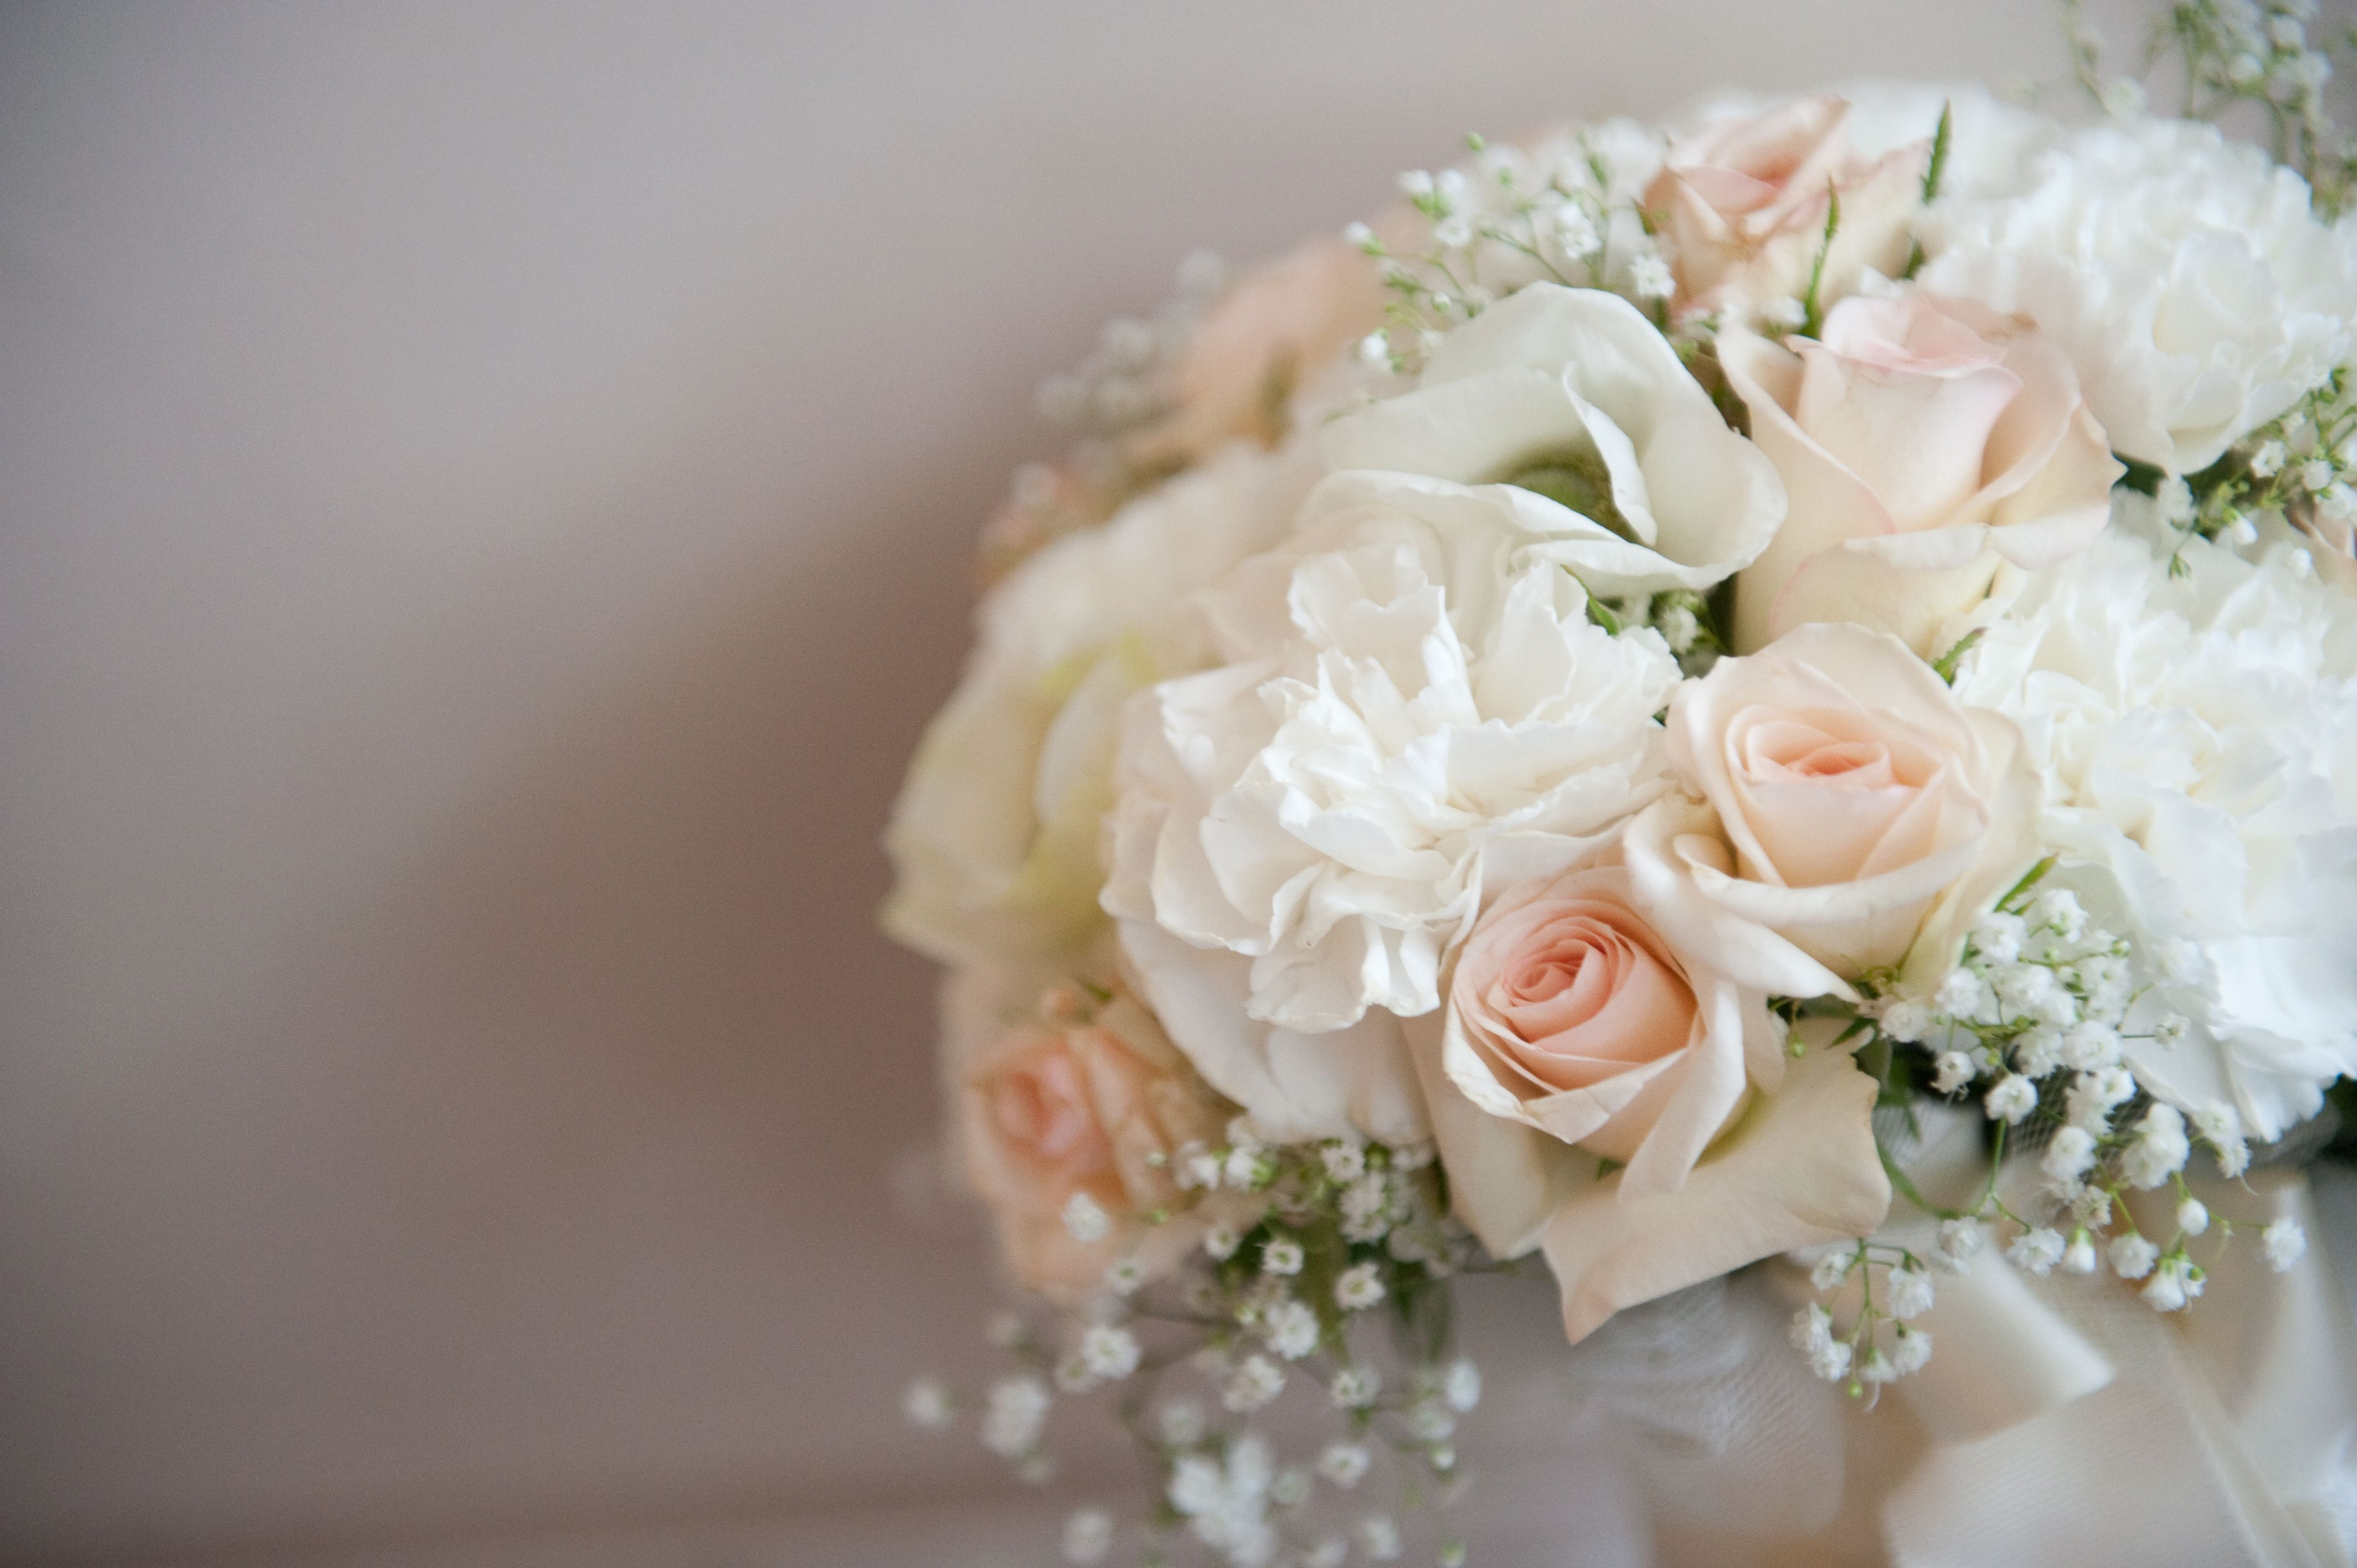 Soft Peach And White Bridal Bouquet With Baby S Breath Roses Carnations And Anemones Peach Wedding Bouquet Carnation Wedding Flowers Carnation Wedding